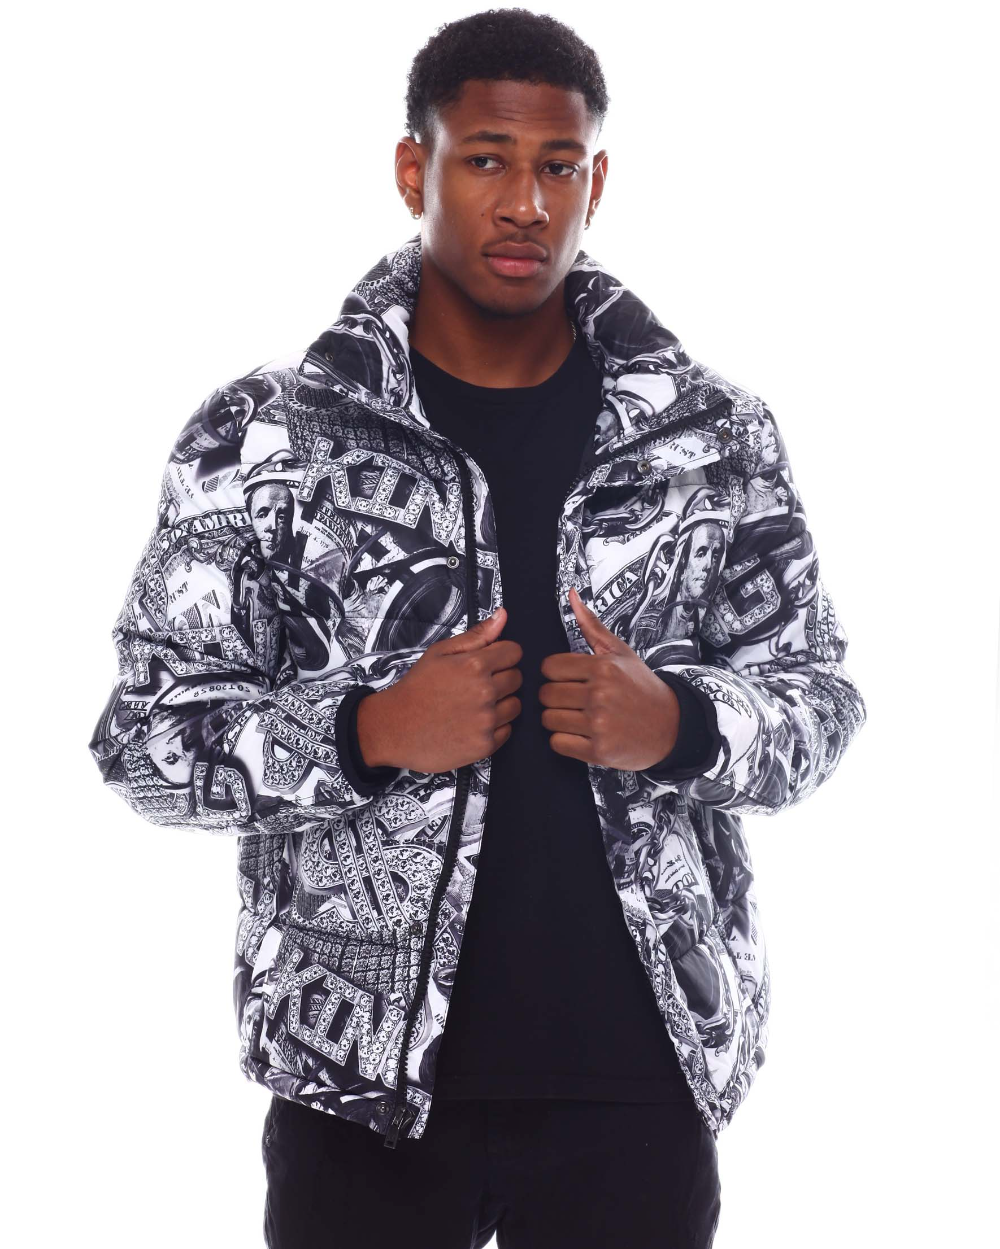 Buy King Bling Jewelry Jacket Men S Outerwear From Buyers Picks Find Buyers Picks Fashion More At Drjays Co Famous Stars And Straps Outerwear Sweater Hoodie [ 1249 x 1000 Pixel ]